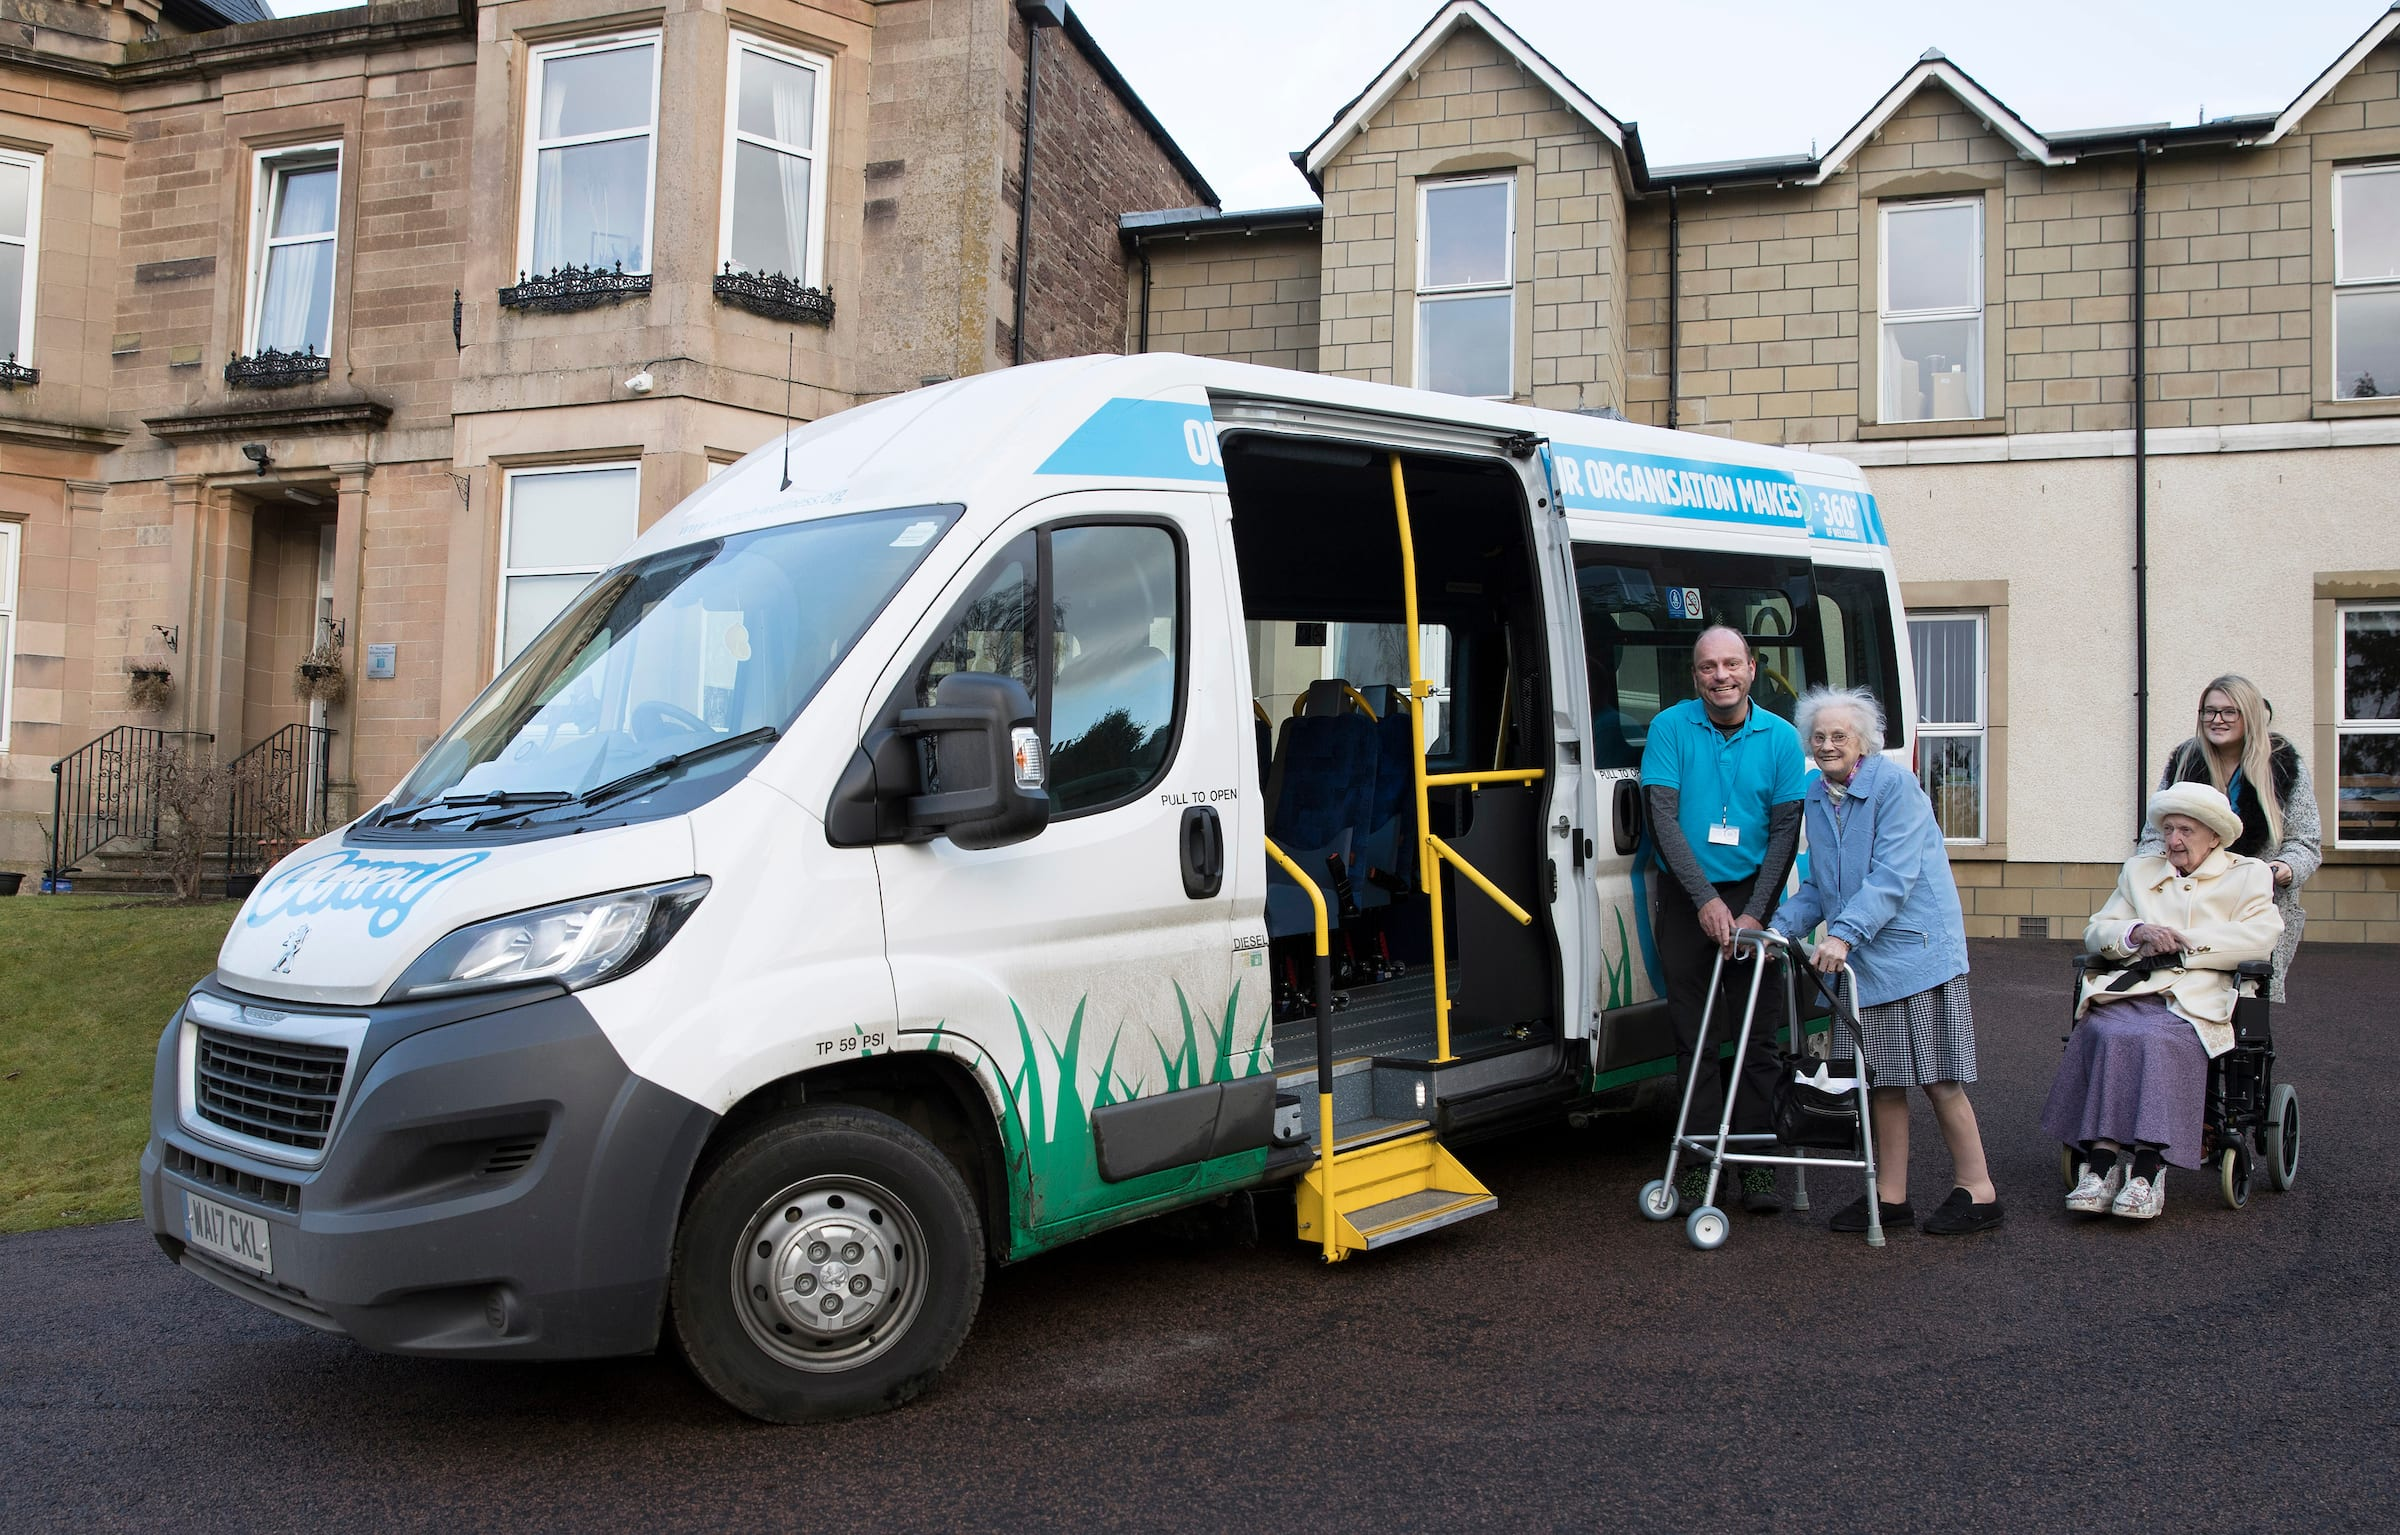 Balhousie puts some Oomph! into its care homes with innovative partnership